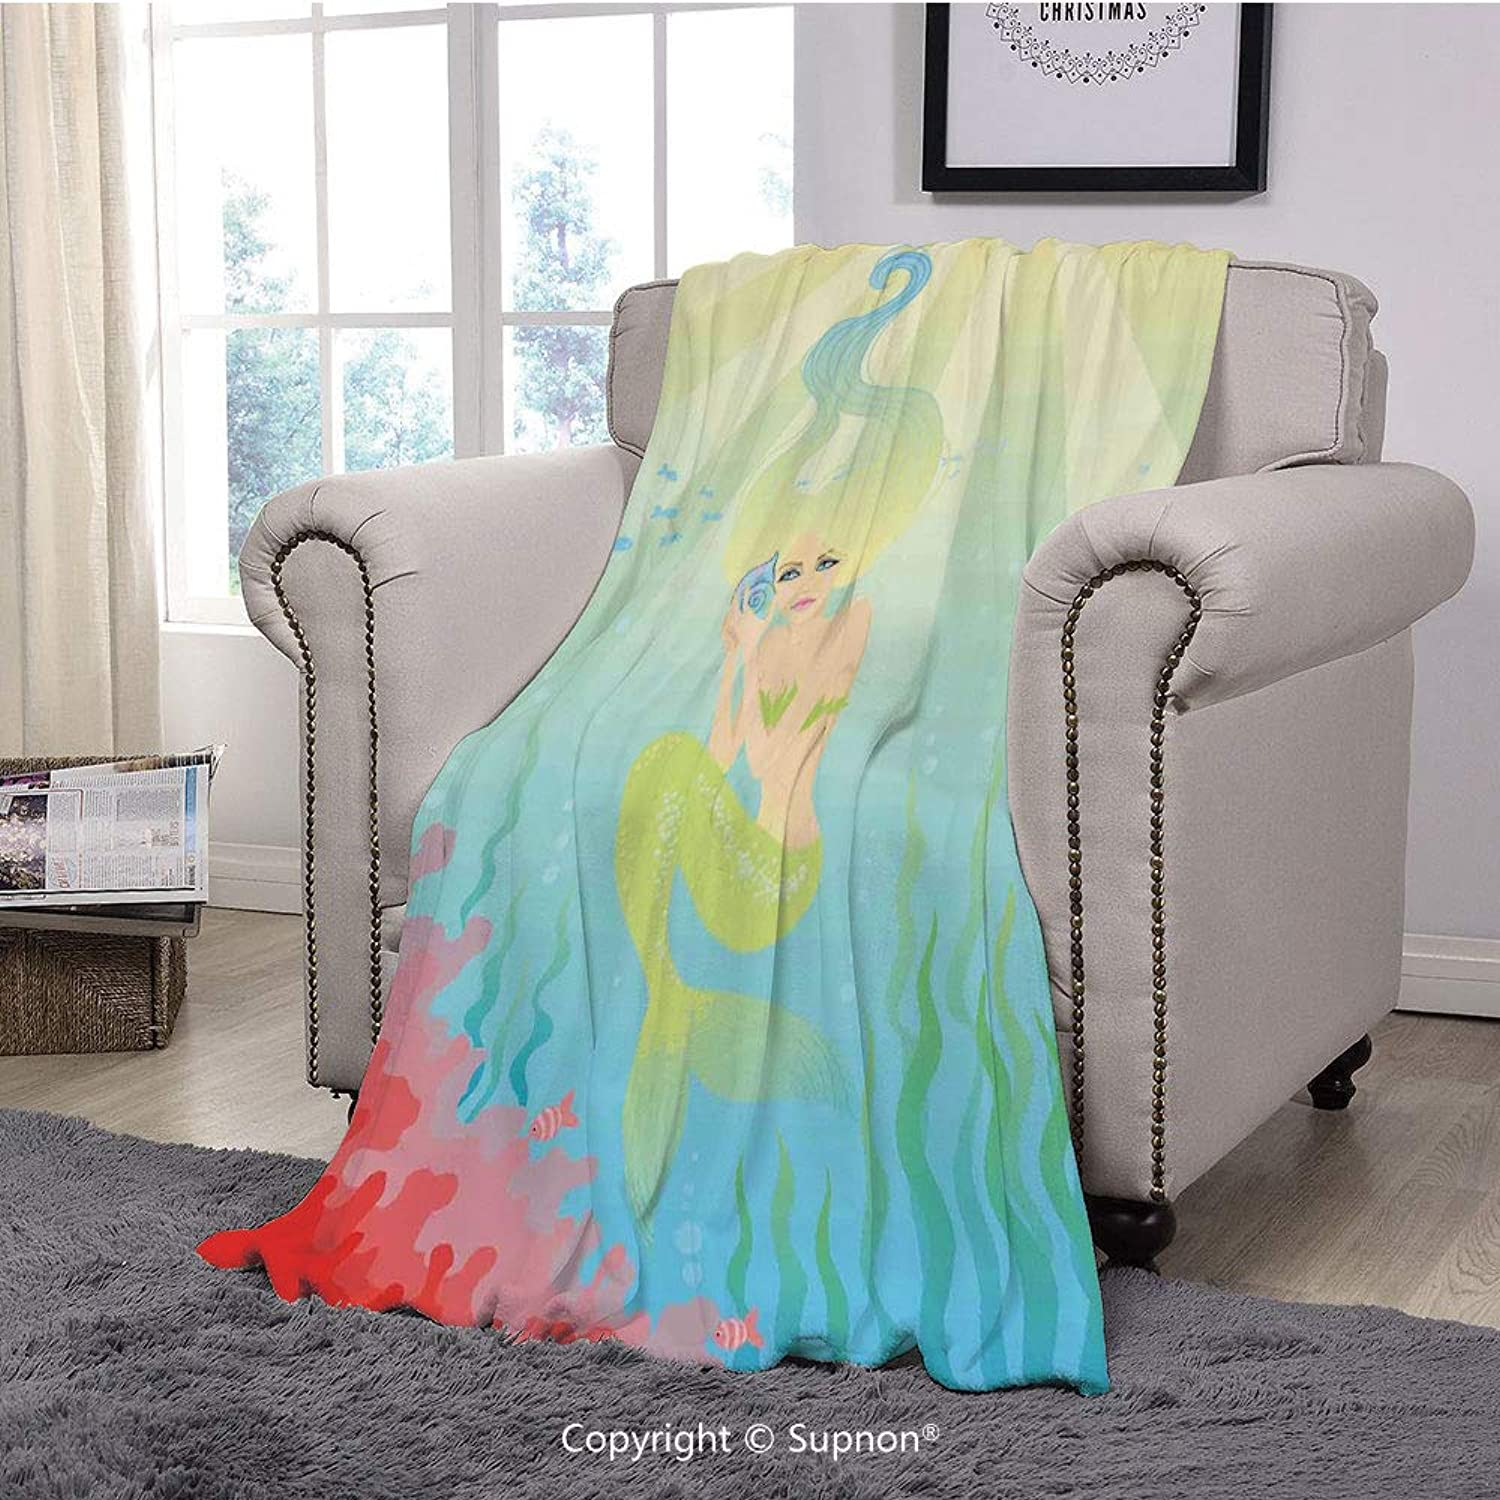 Koltose by Mash Emoji Throw Blanket Toddlers Kids Teens and Young Adults Super Soft Large Fluffy Lightweight Blue Emoticon Blanket for Boys and Girls 50in x 60in